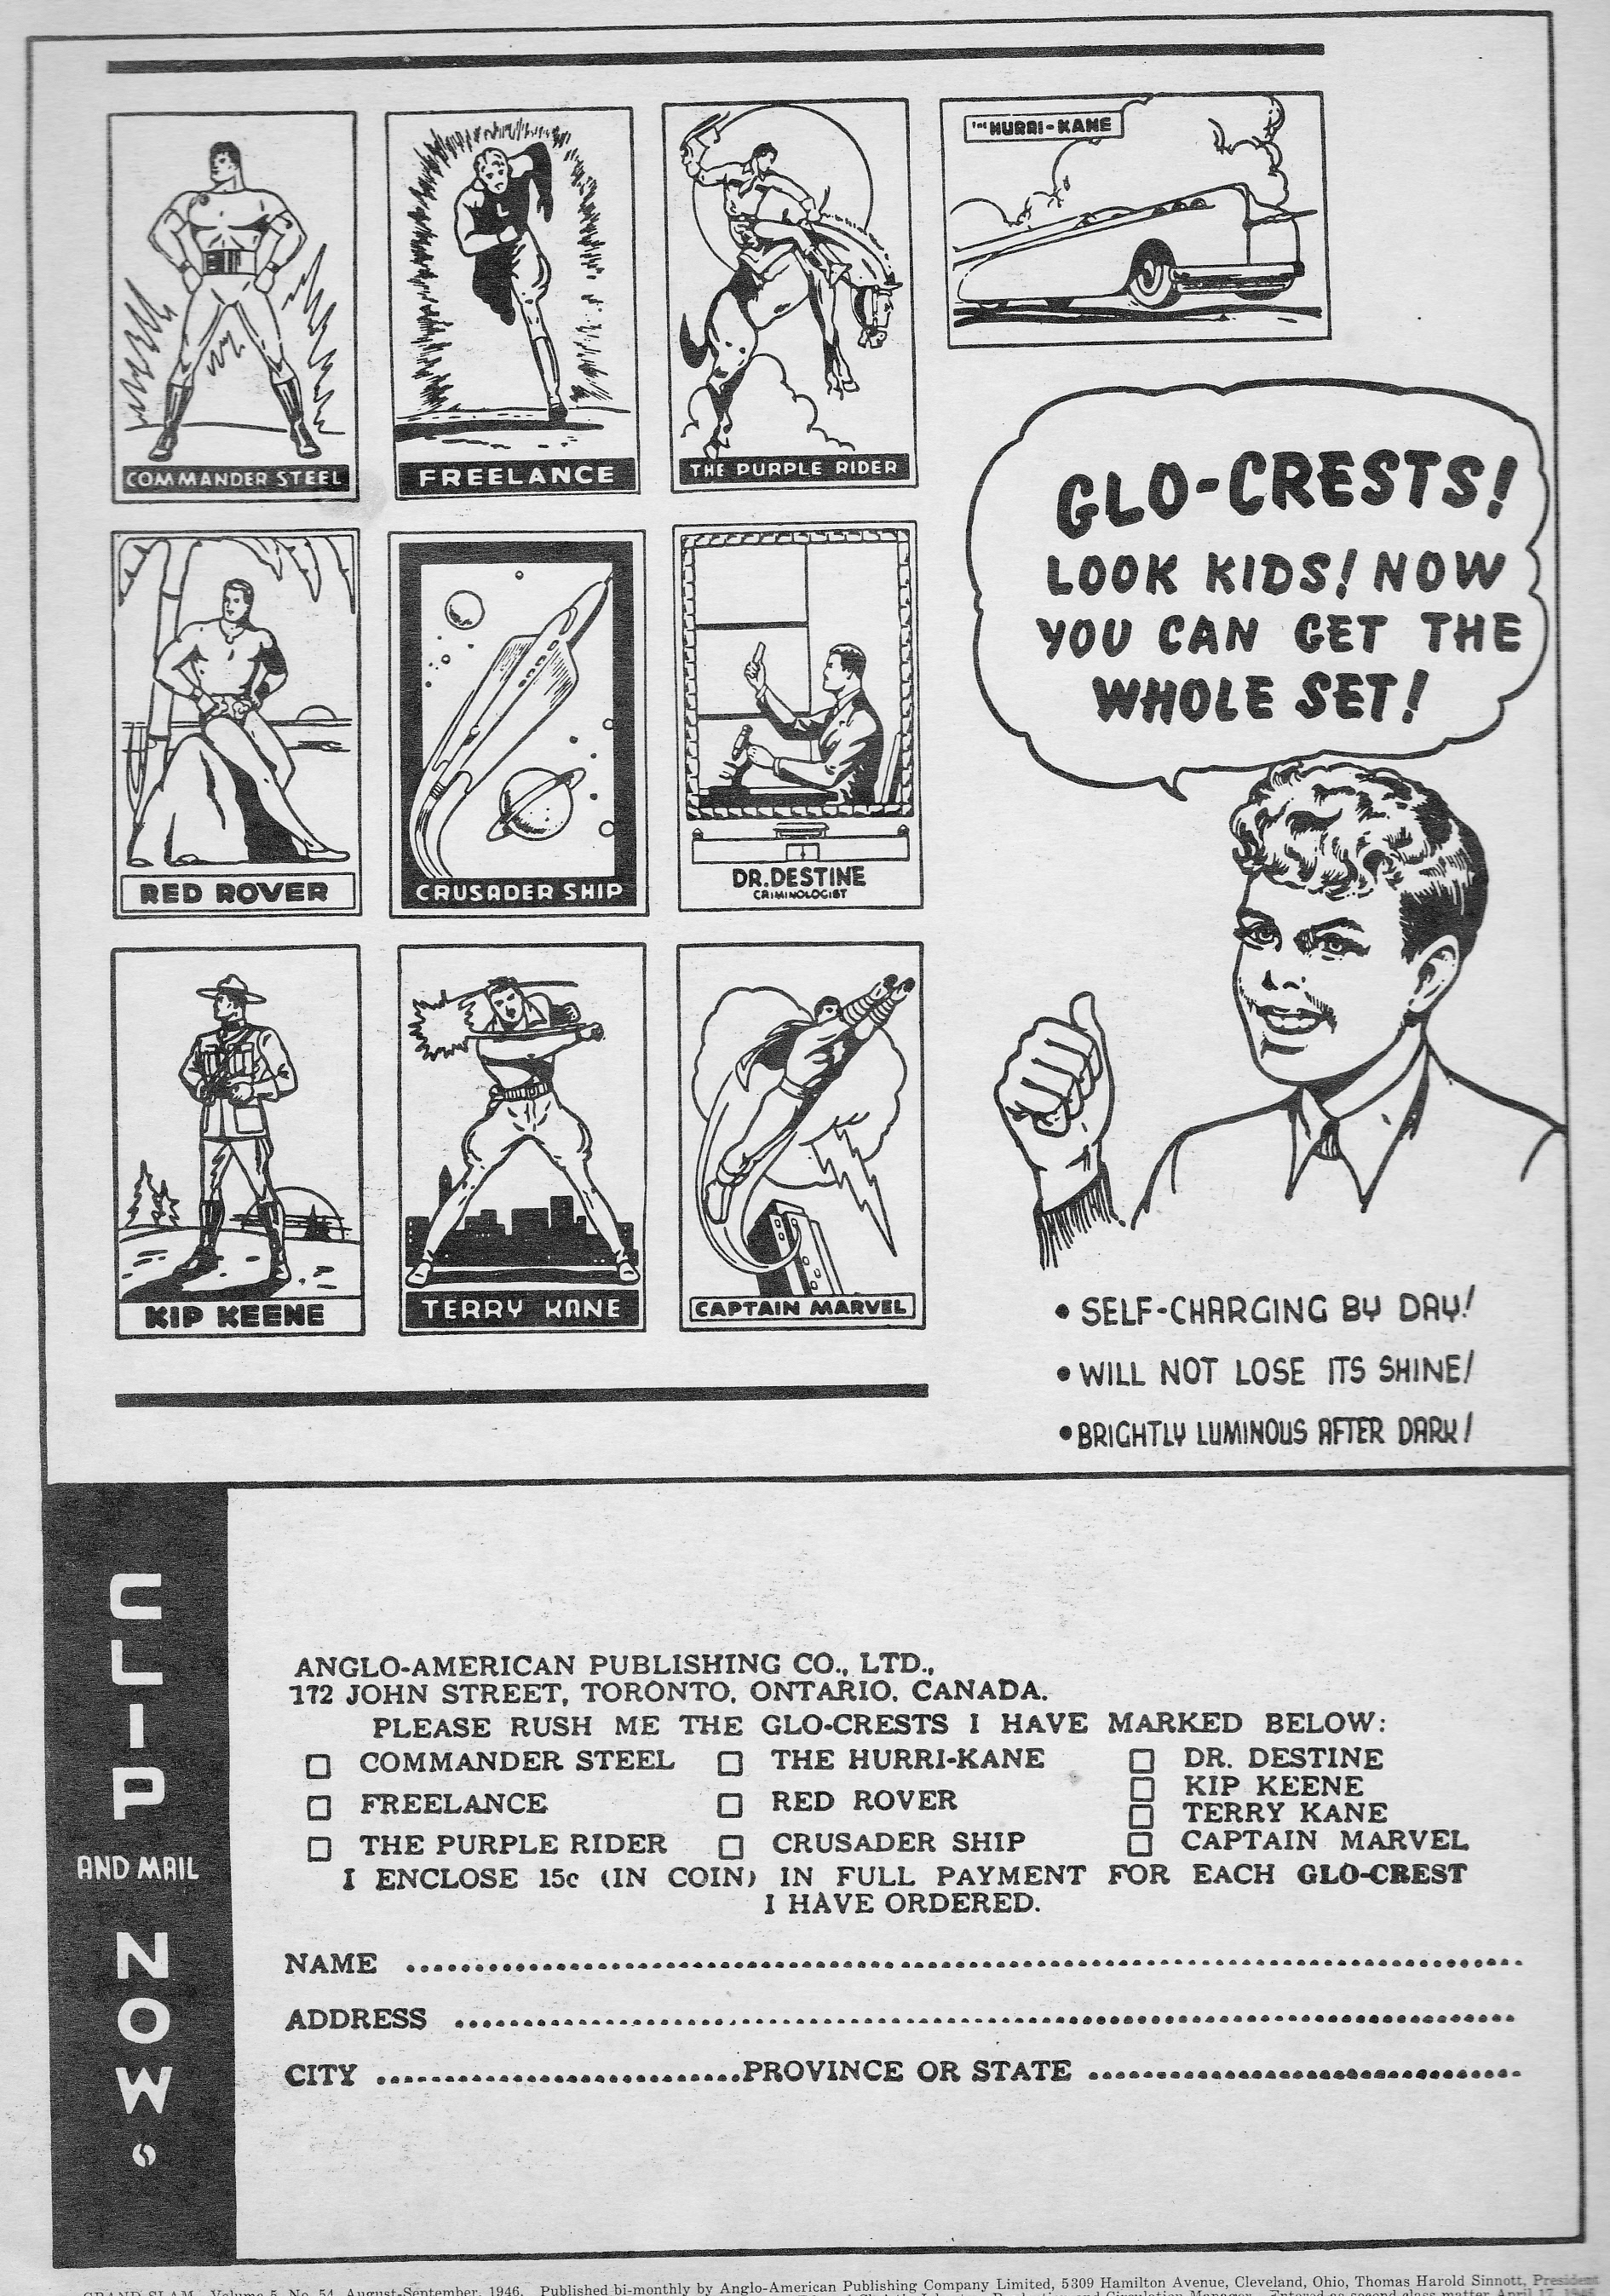 C:\Users\Robert\Documents\CARTOONING ILLUSTRATION ANIMATION\IMAGE COMIC BOOK COVERS\Glo Crest Advertisement, Grand Slam, V54 Aug,Sept 1946 fc.jpg